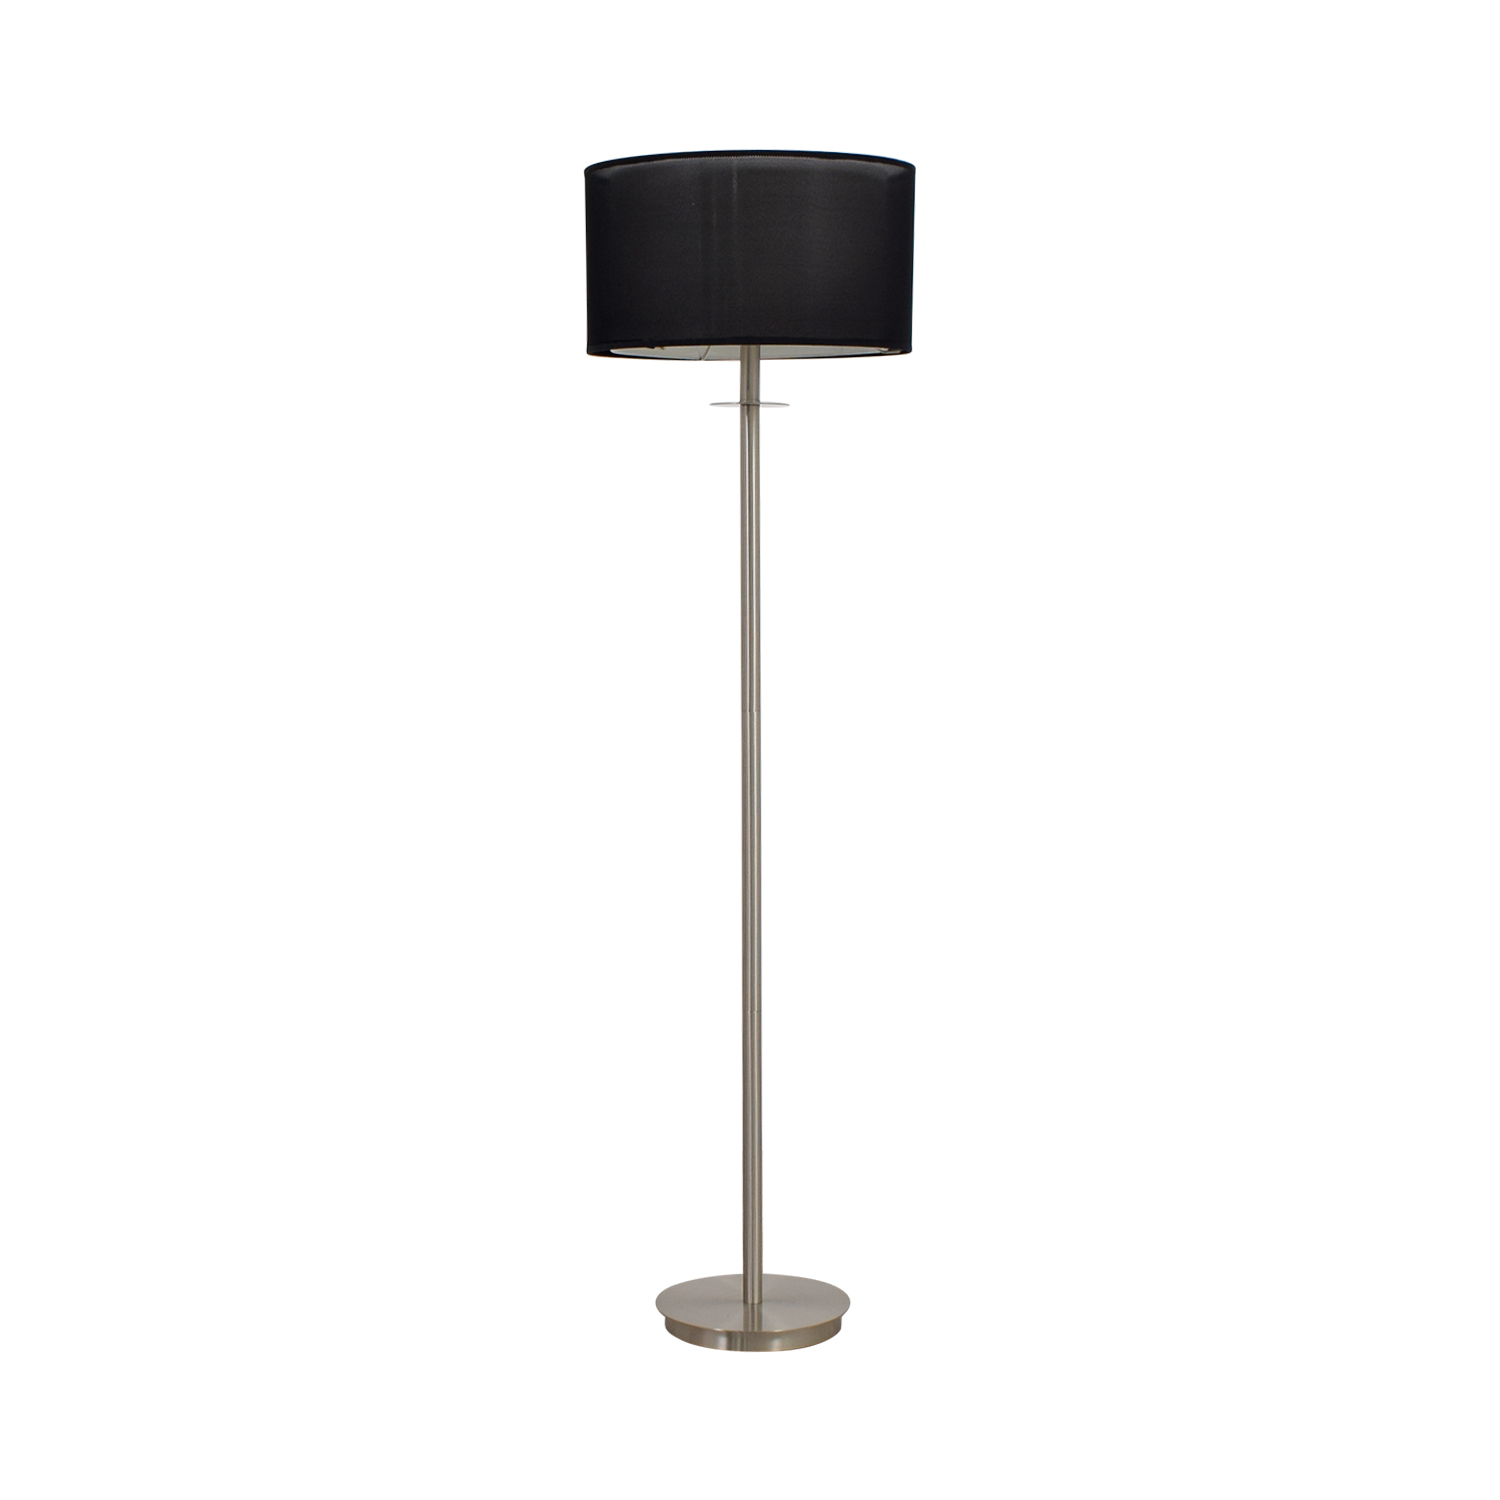 80 off metal floor lamp with black shade decor metal floor lamp with black shade nyc aloadofball Choice Image